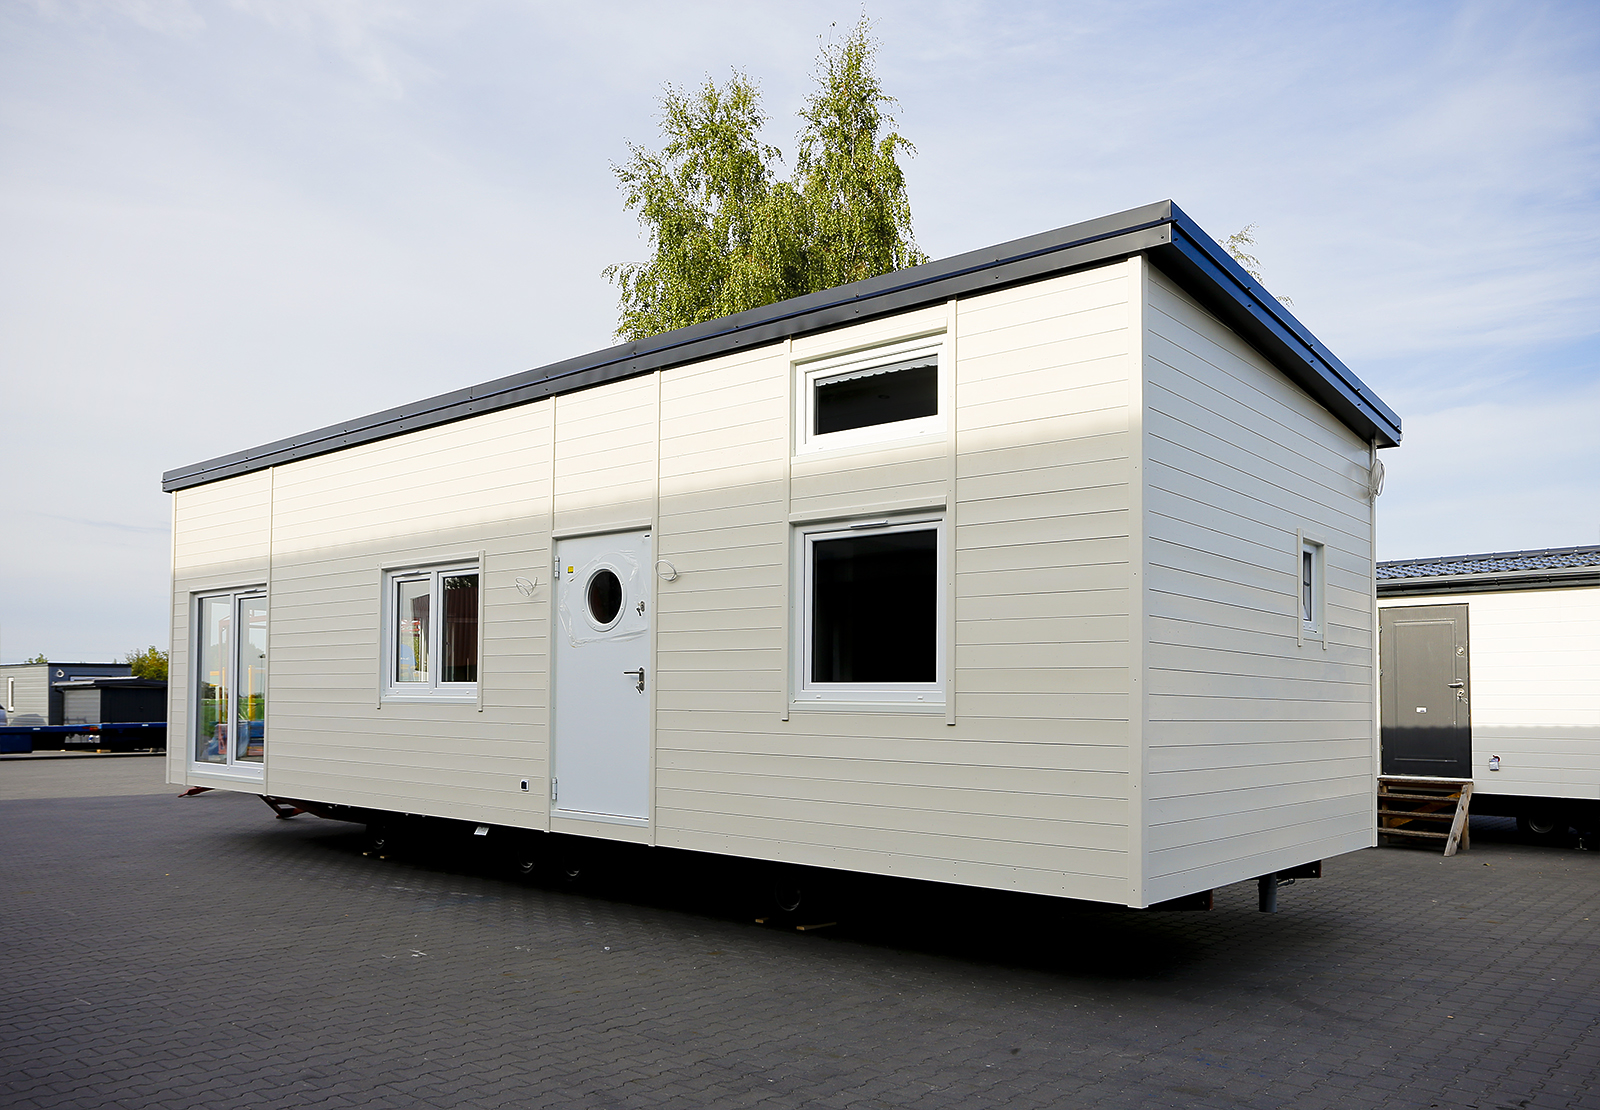 Mobile holiday homes - DMK Budownictwo